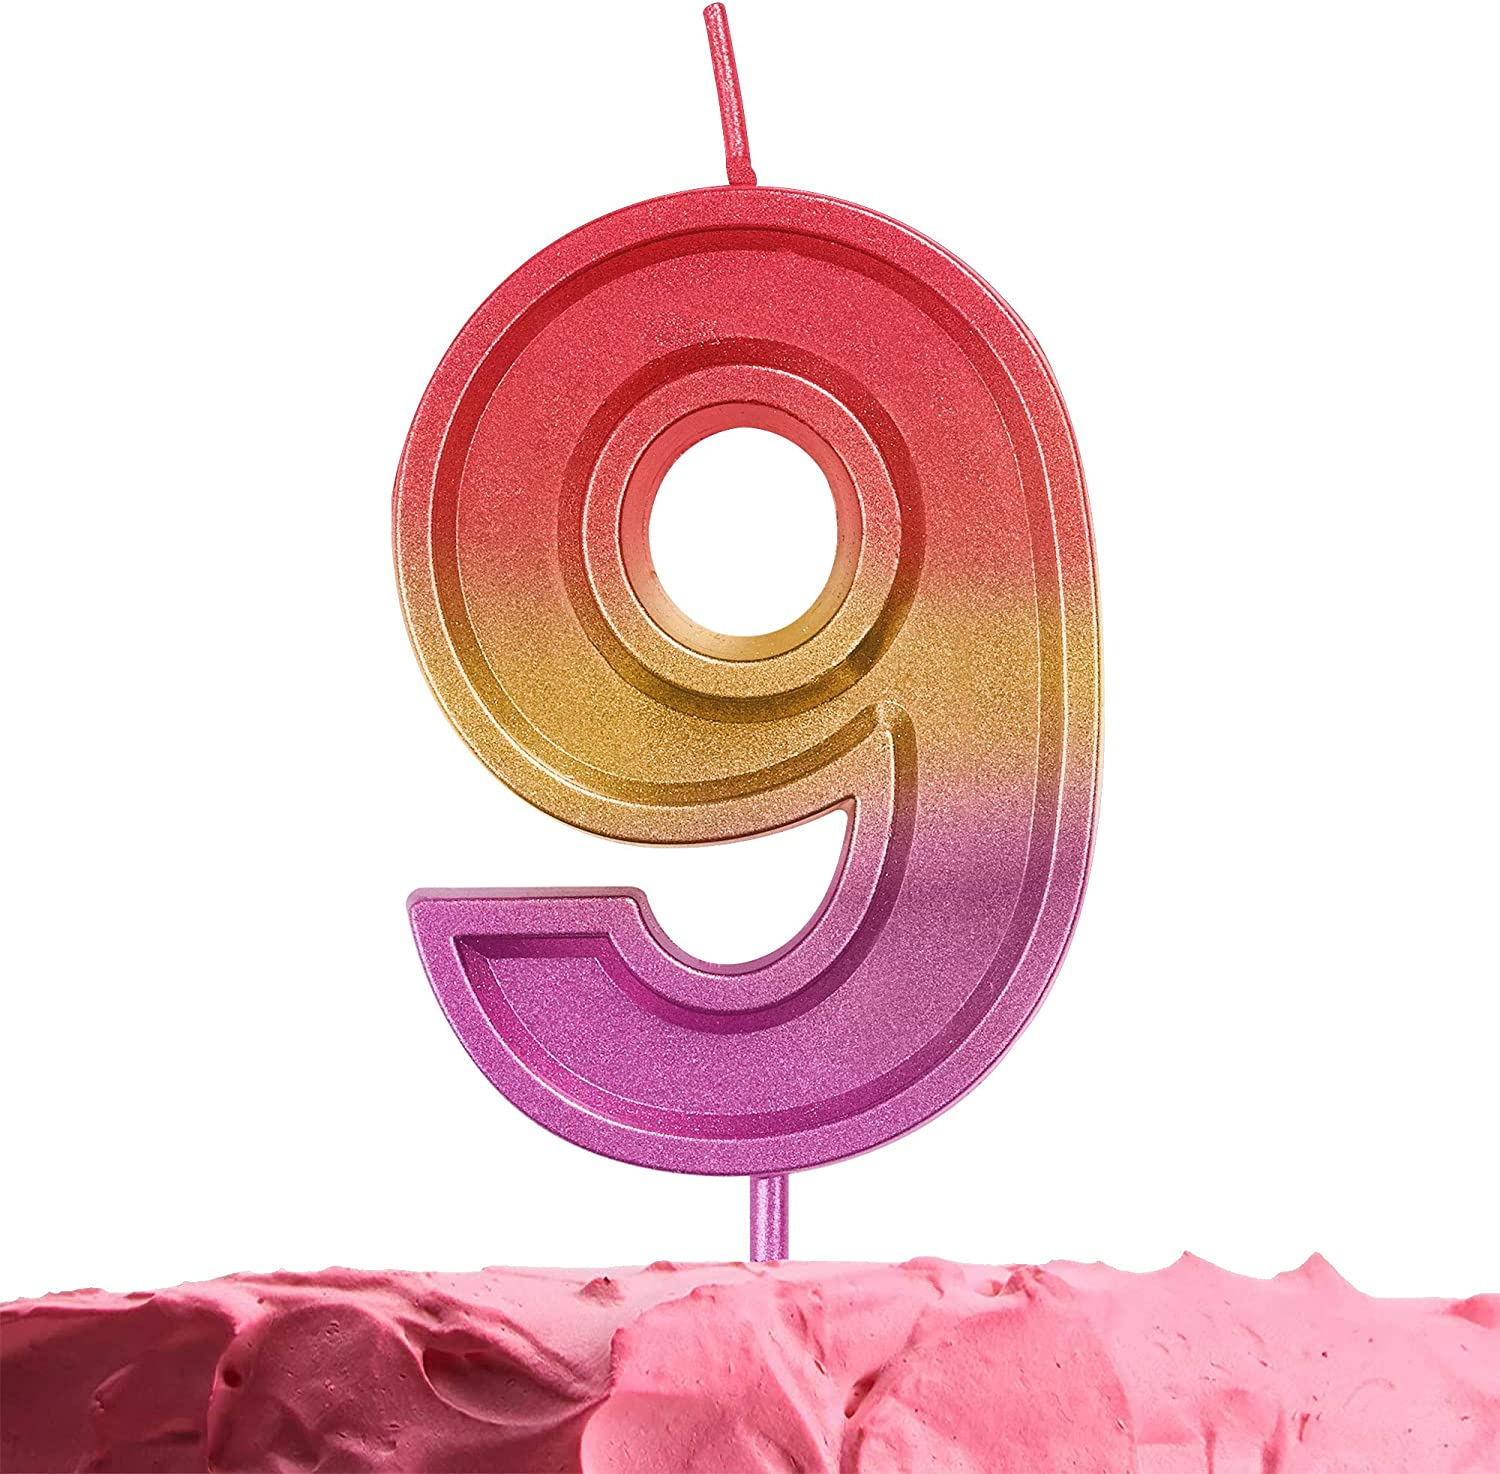 10th Birthday Candle for Cake Decoration GET FRESH Number 10 Birthday Candle Rainbow Number 10 Candle on Sticks Multicolor Ten Cake Candle Number Ten Candles for Birthday Anniversary